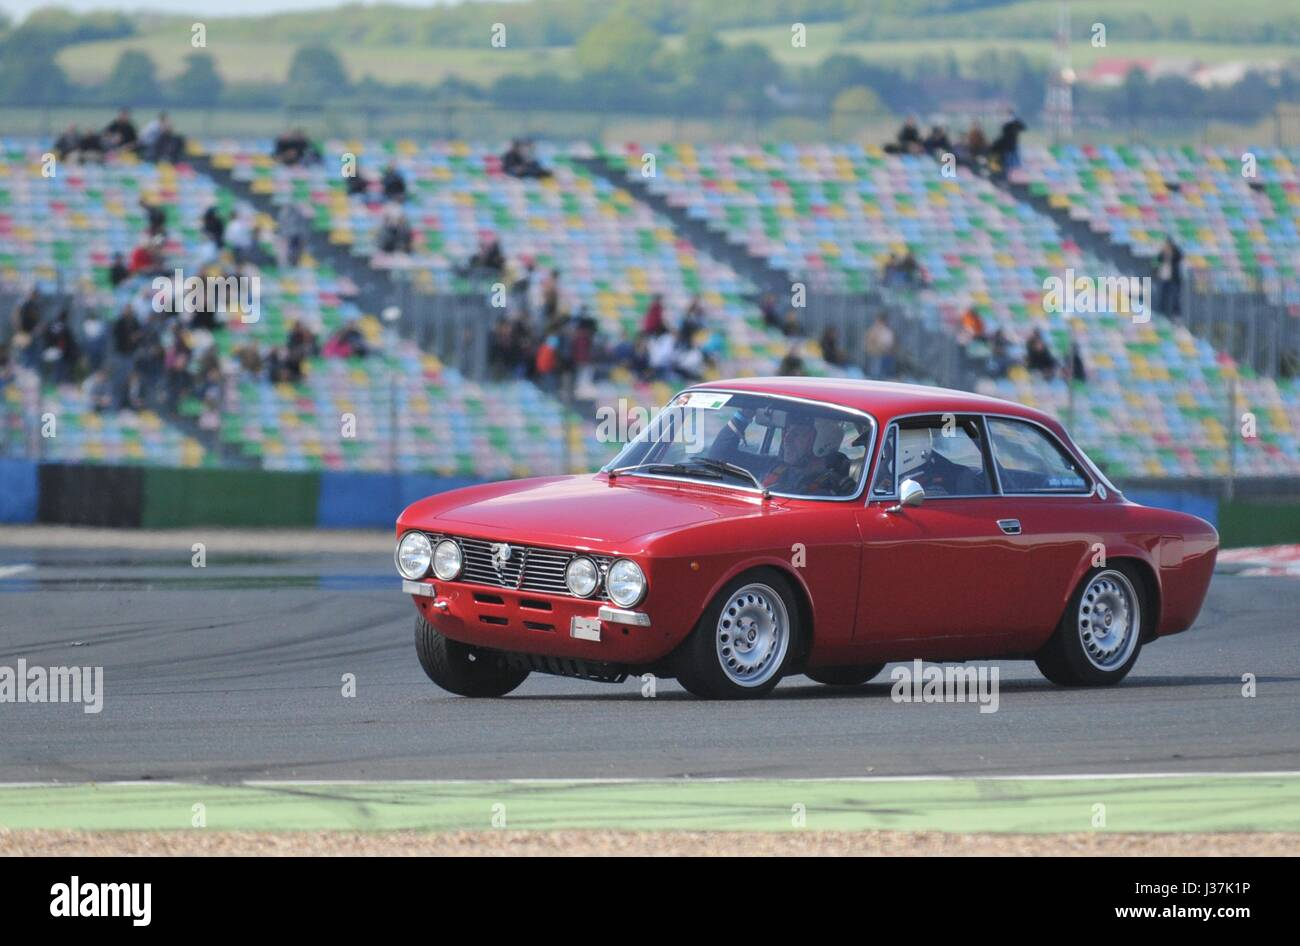 Alfa Rome Giulia Coupe Bertone On The Magny Cours Track During The